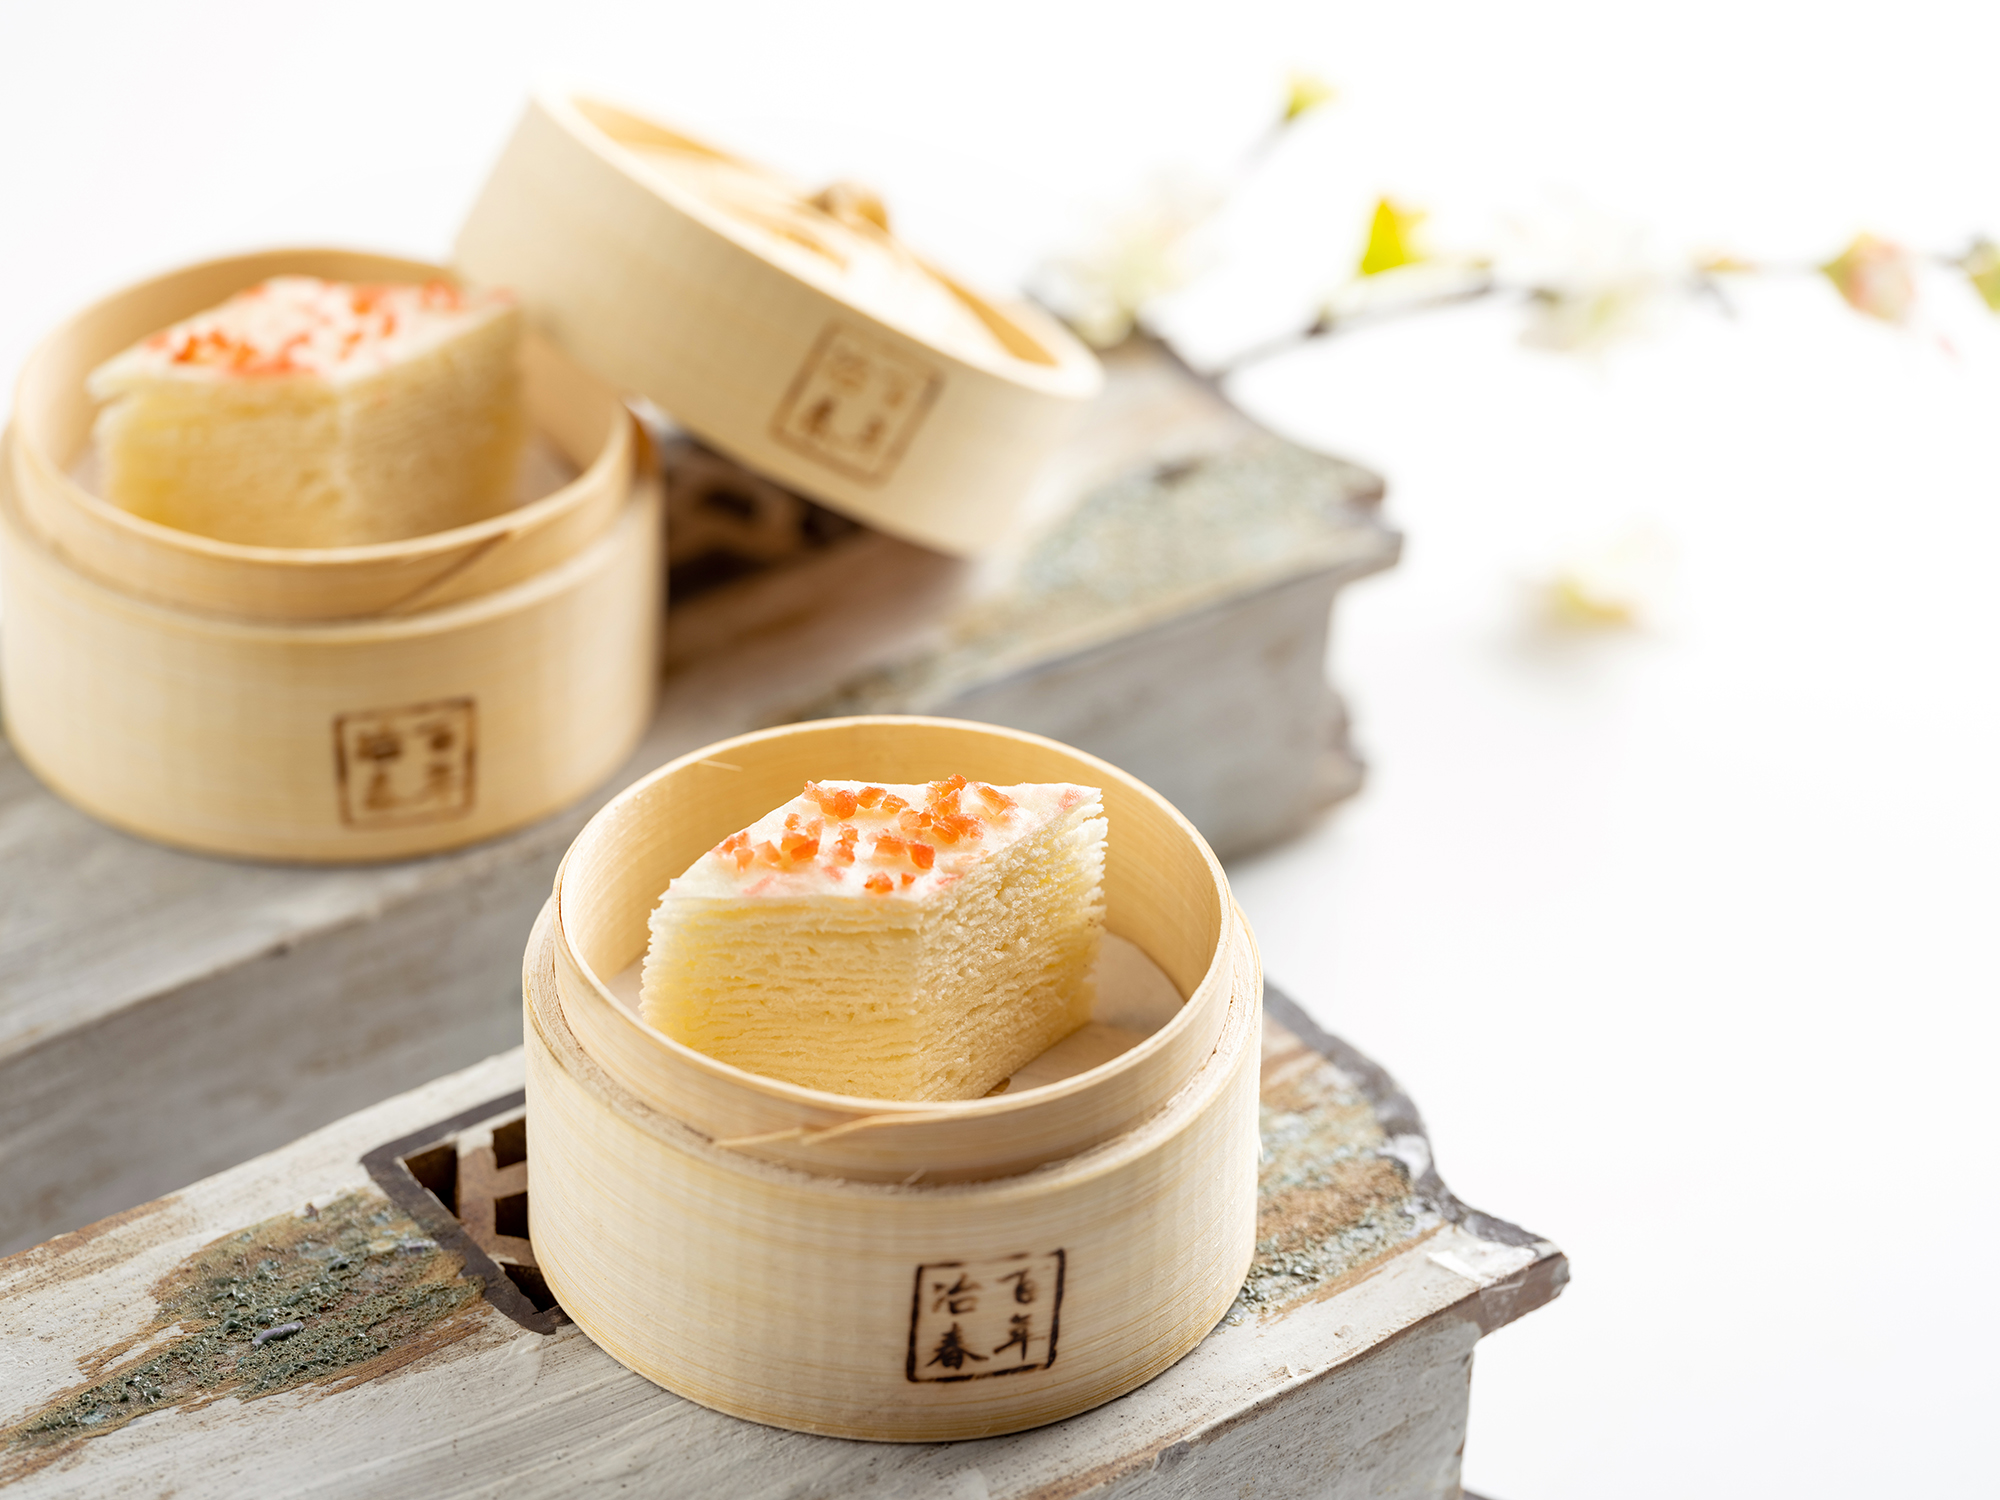 千层油糕 Sweet Sponge Cakes with Multiple Layers